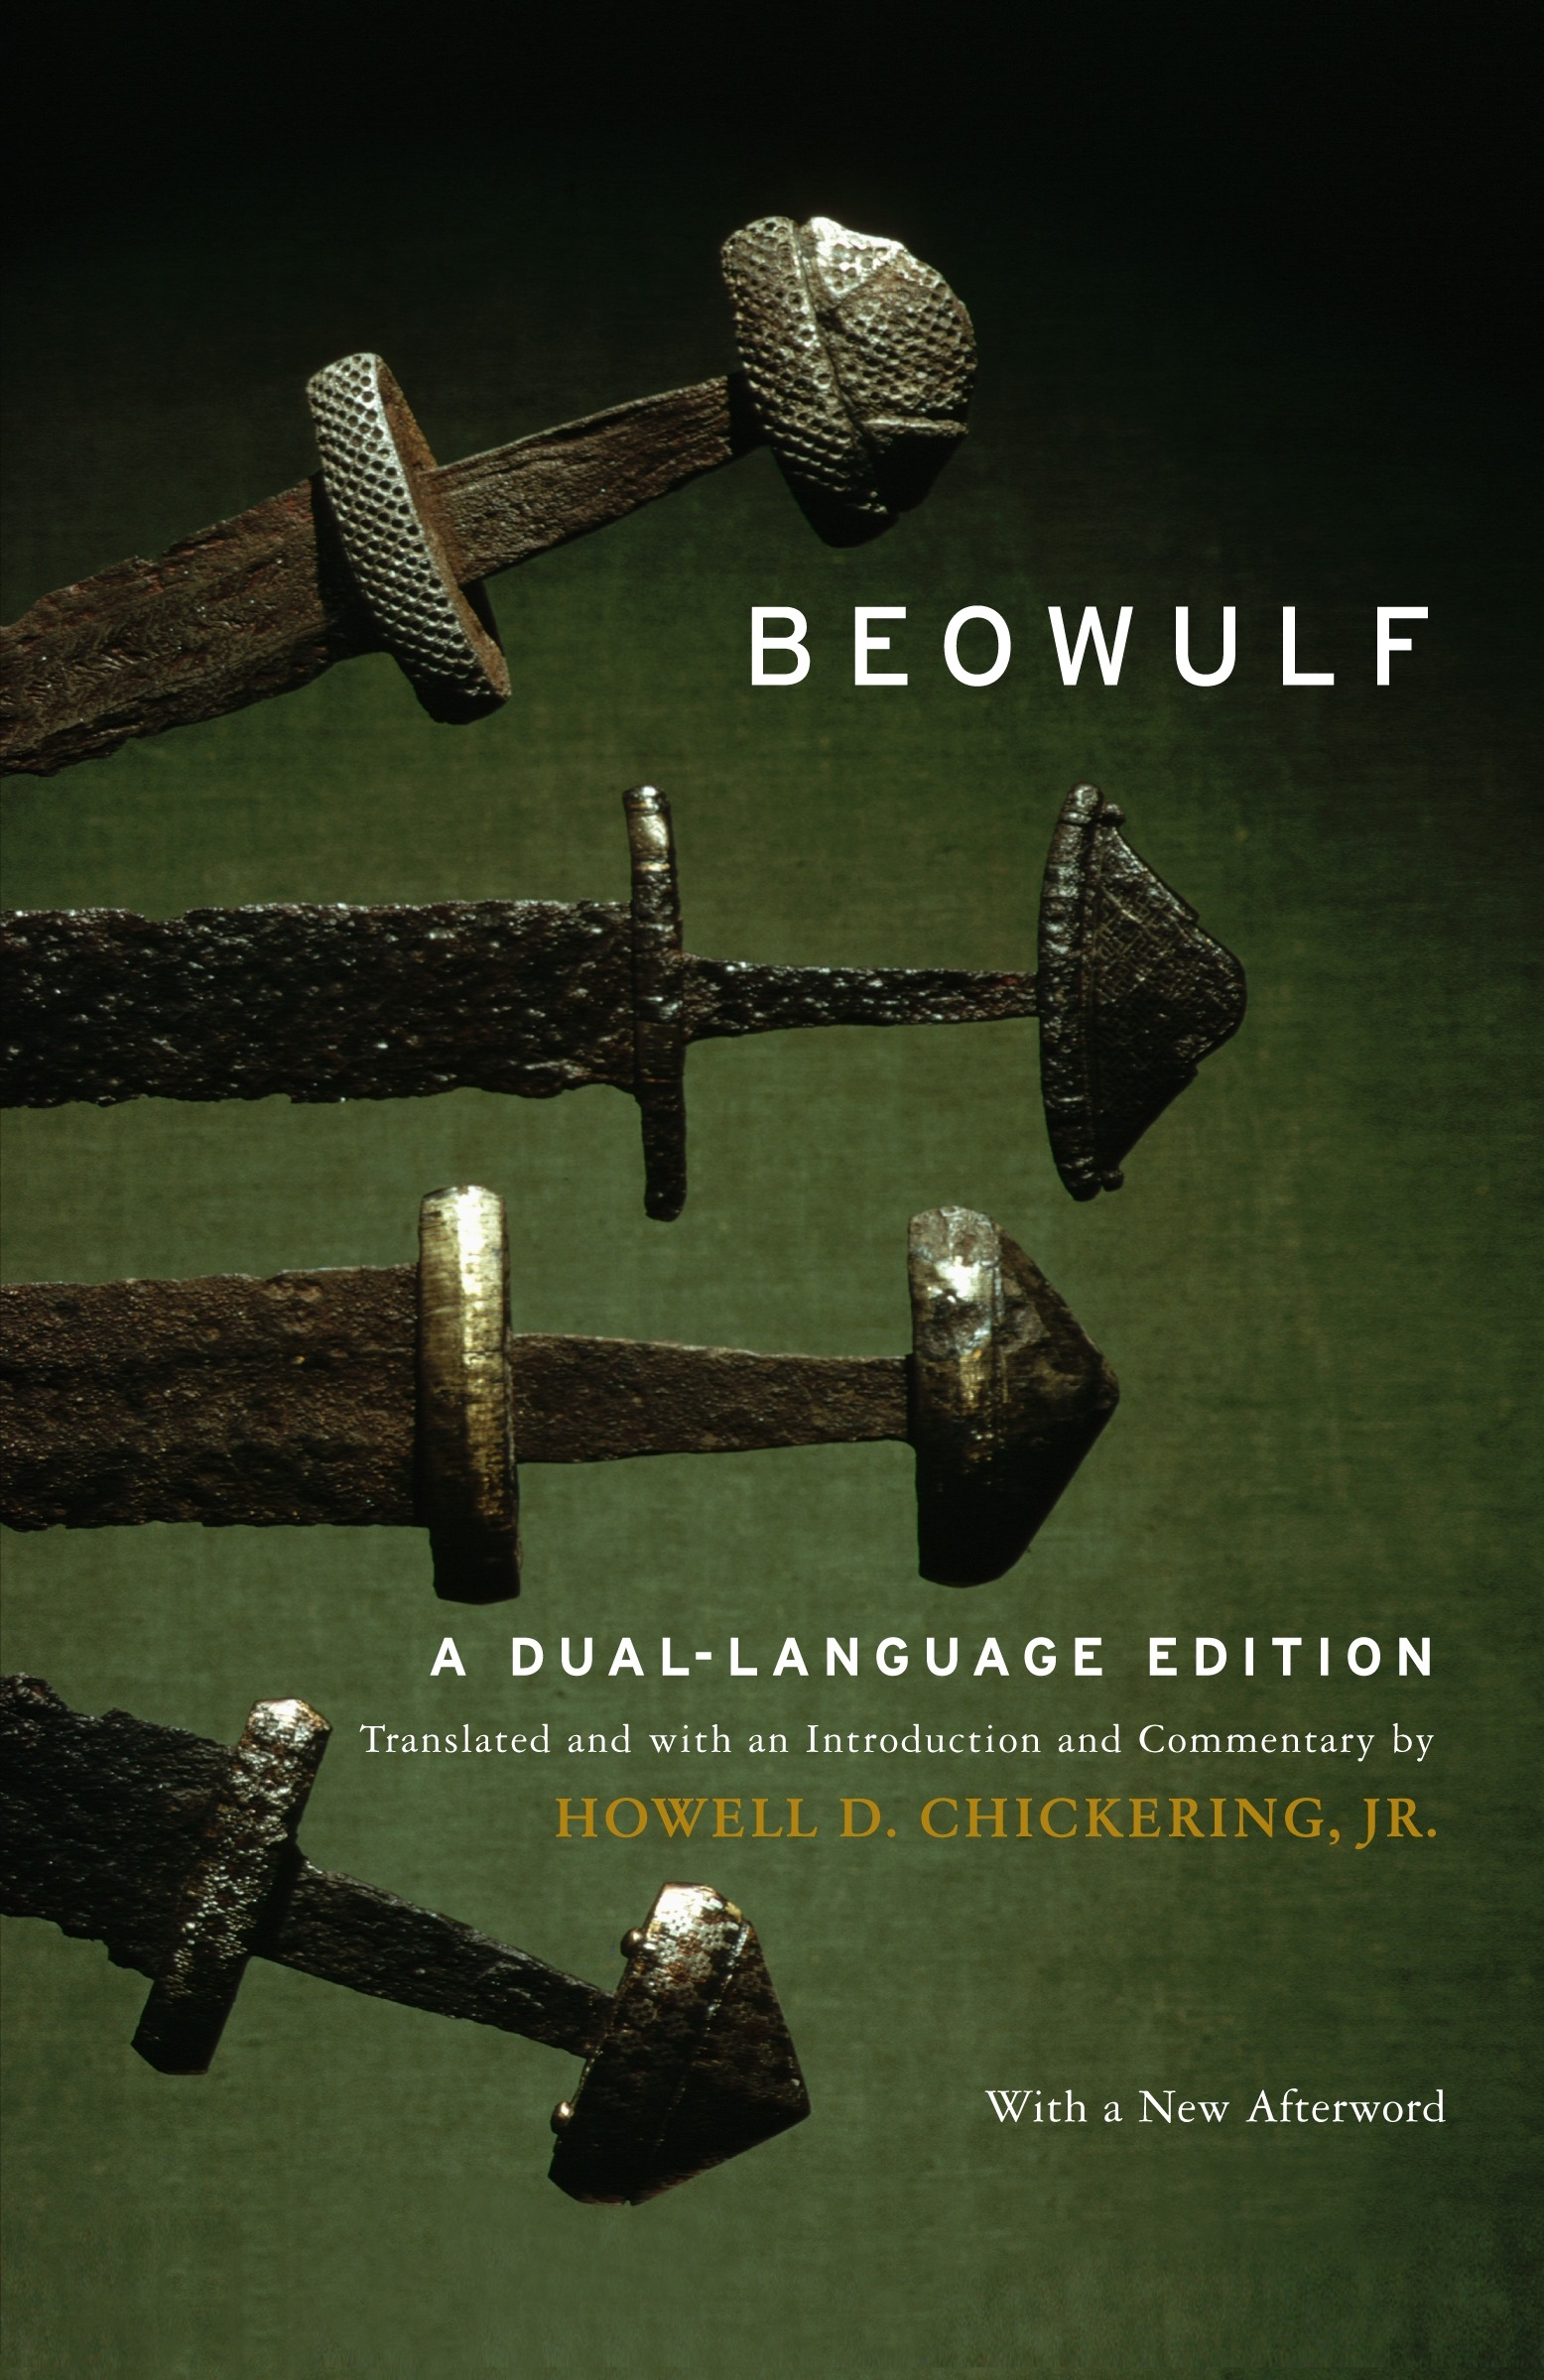 Beowulf by Howell D. Chickering - Penguin Books Australia